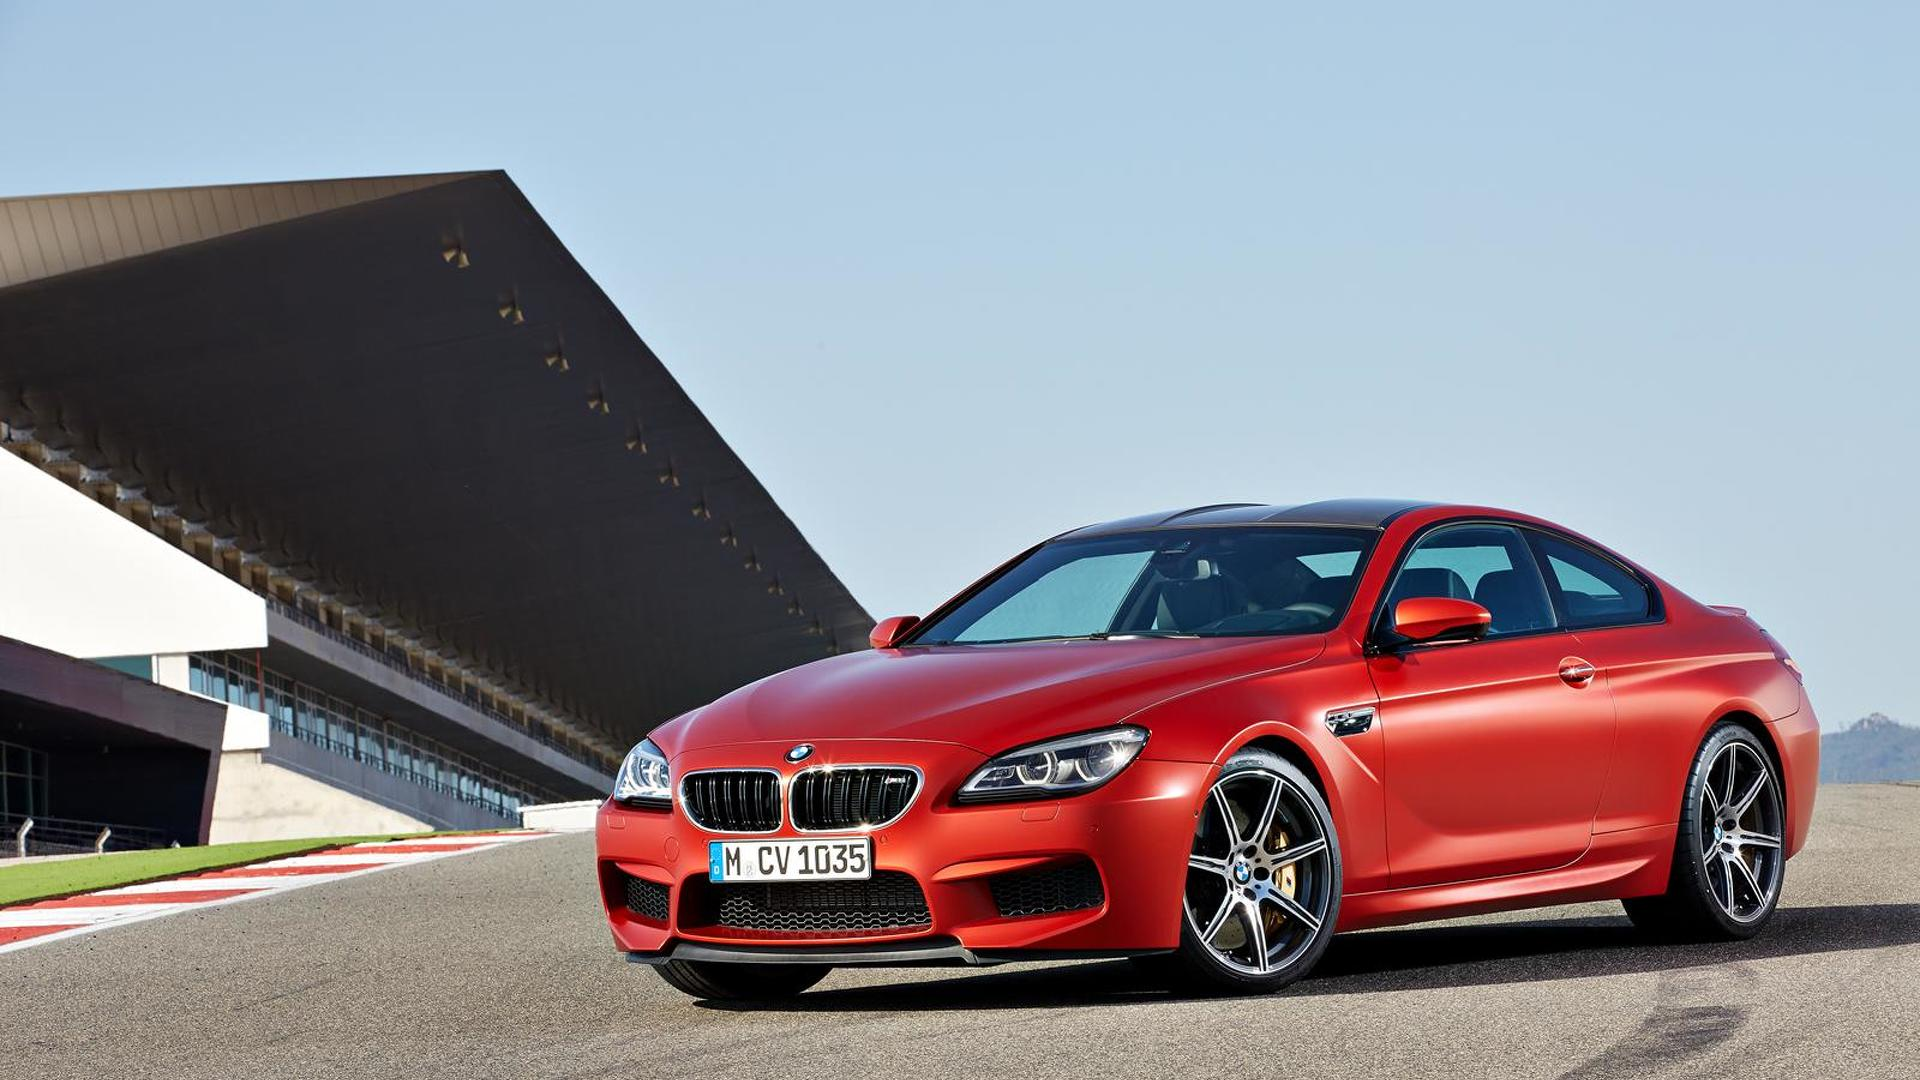 2017 BMW 6 Series Expected To Lose 500 Lbs M6 With 600 HP